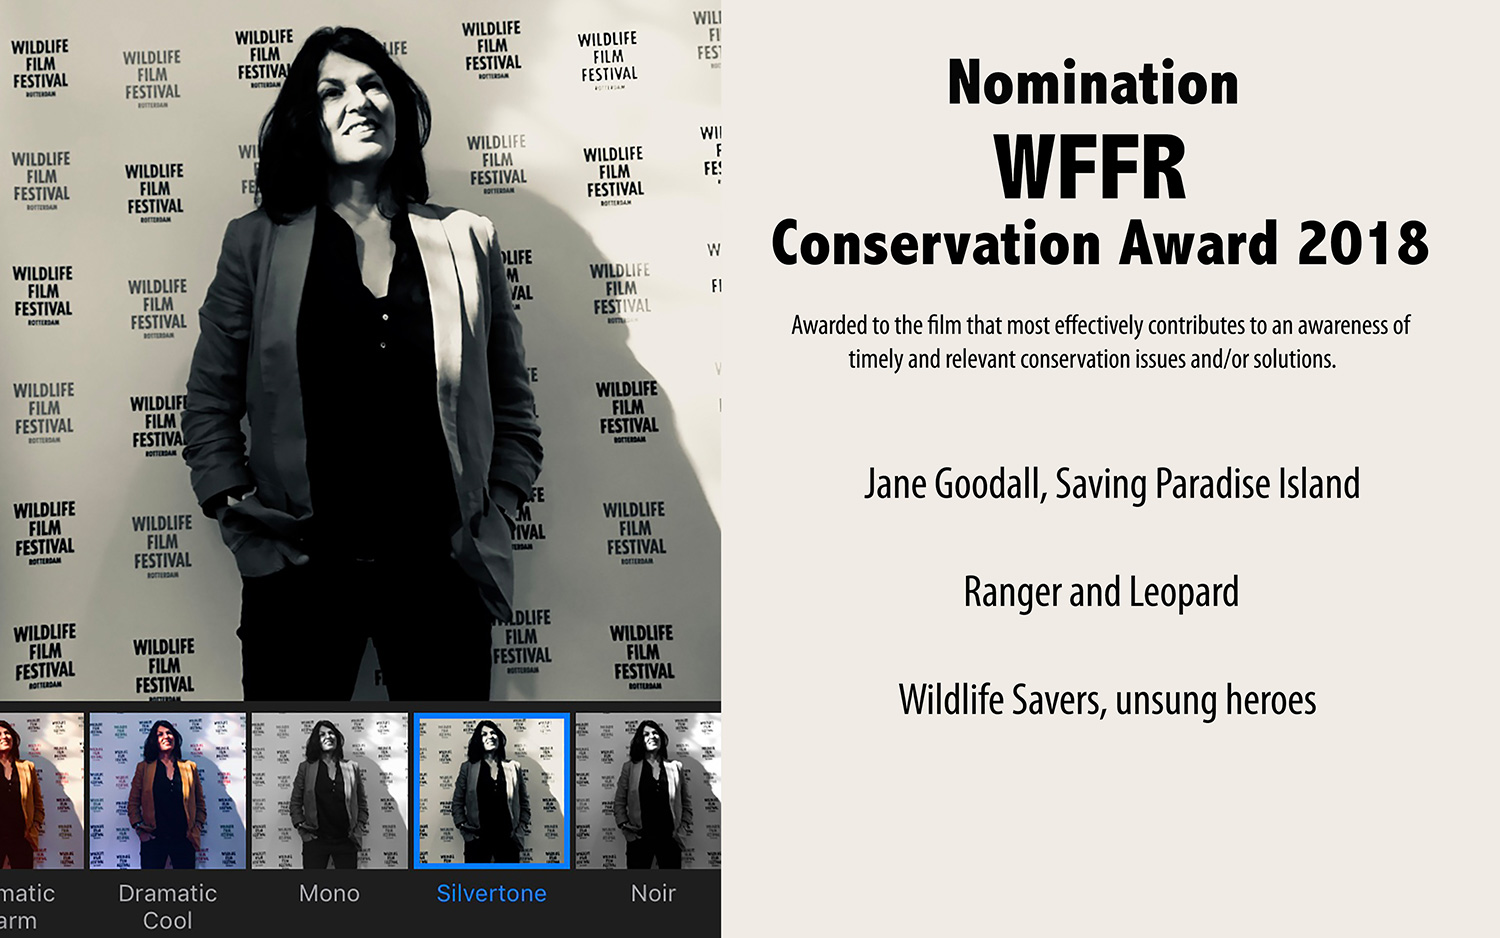 Annegre-Bosman-winner-WFFR-Conservation-Award-2018-Wildlife-Savers,-unsung-heroes